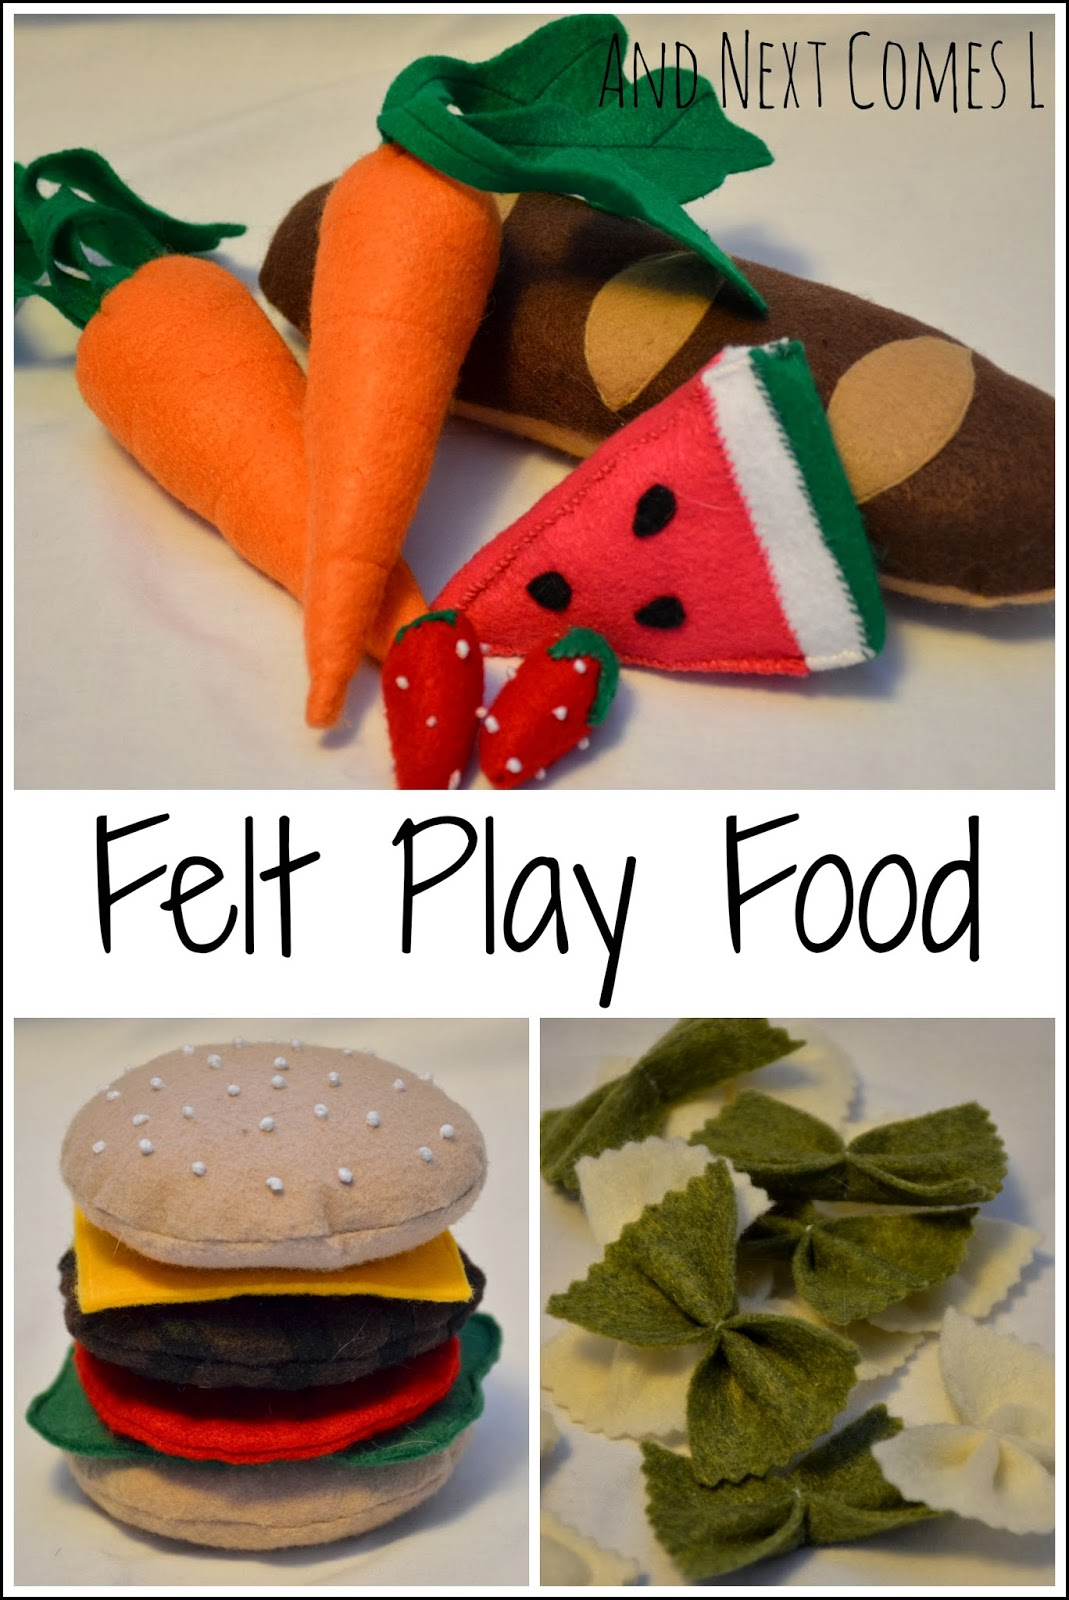 Tutorials for making your own felt play food for kids from And Next Comes L